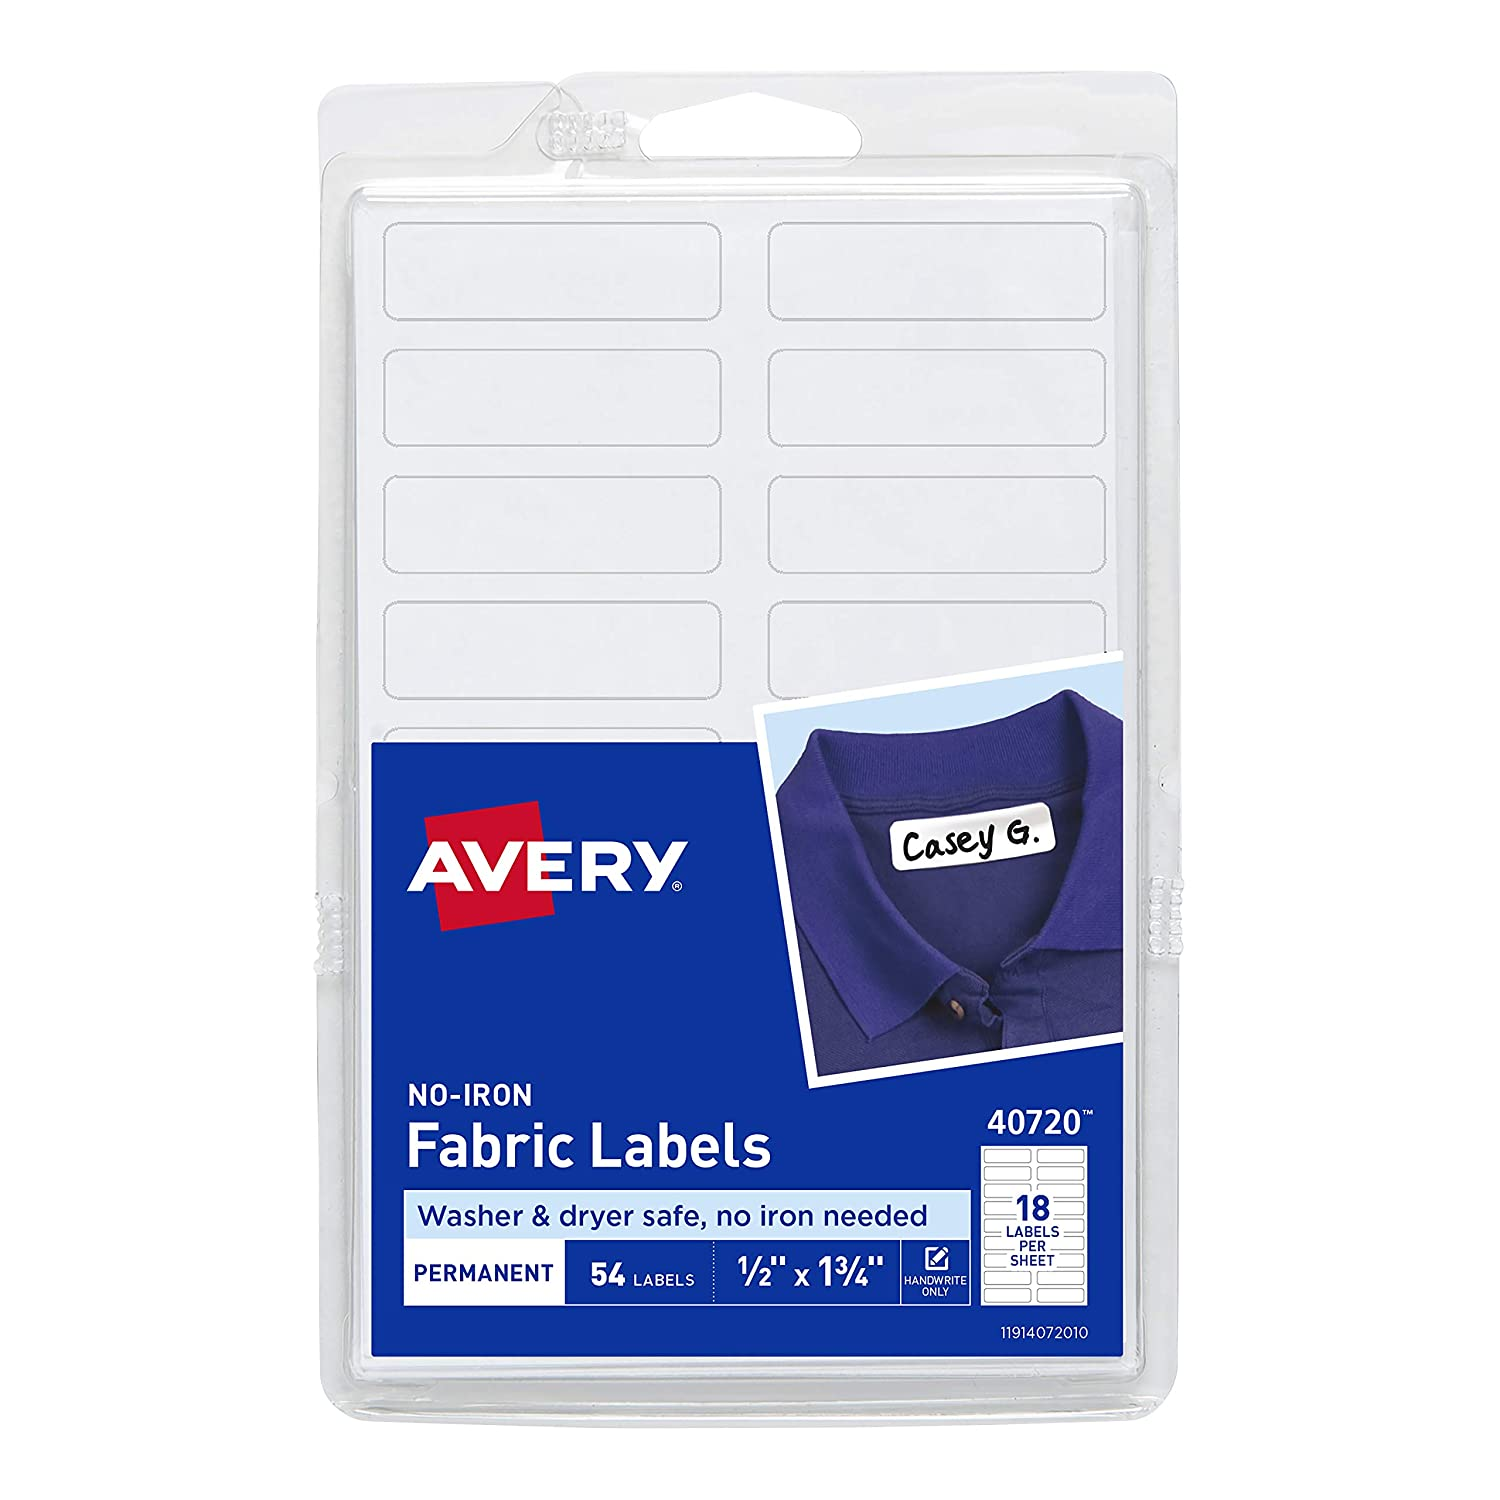 Avery No-Iron Fabric Labels, Washer & Dryer Safe, Handwrite, 1/2 x 1-3/4 Pack of 54 (40720)